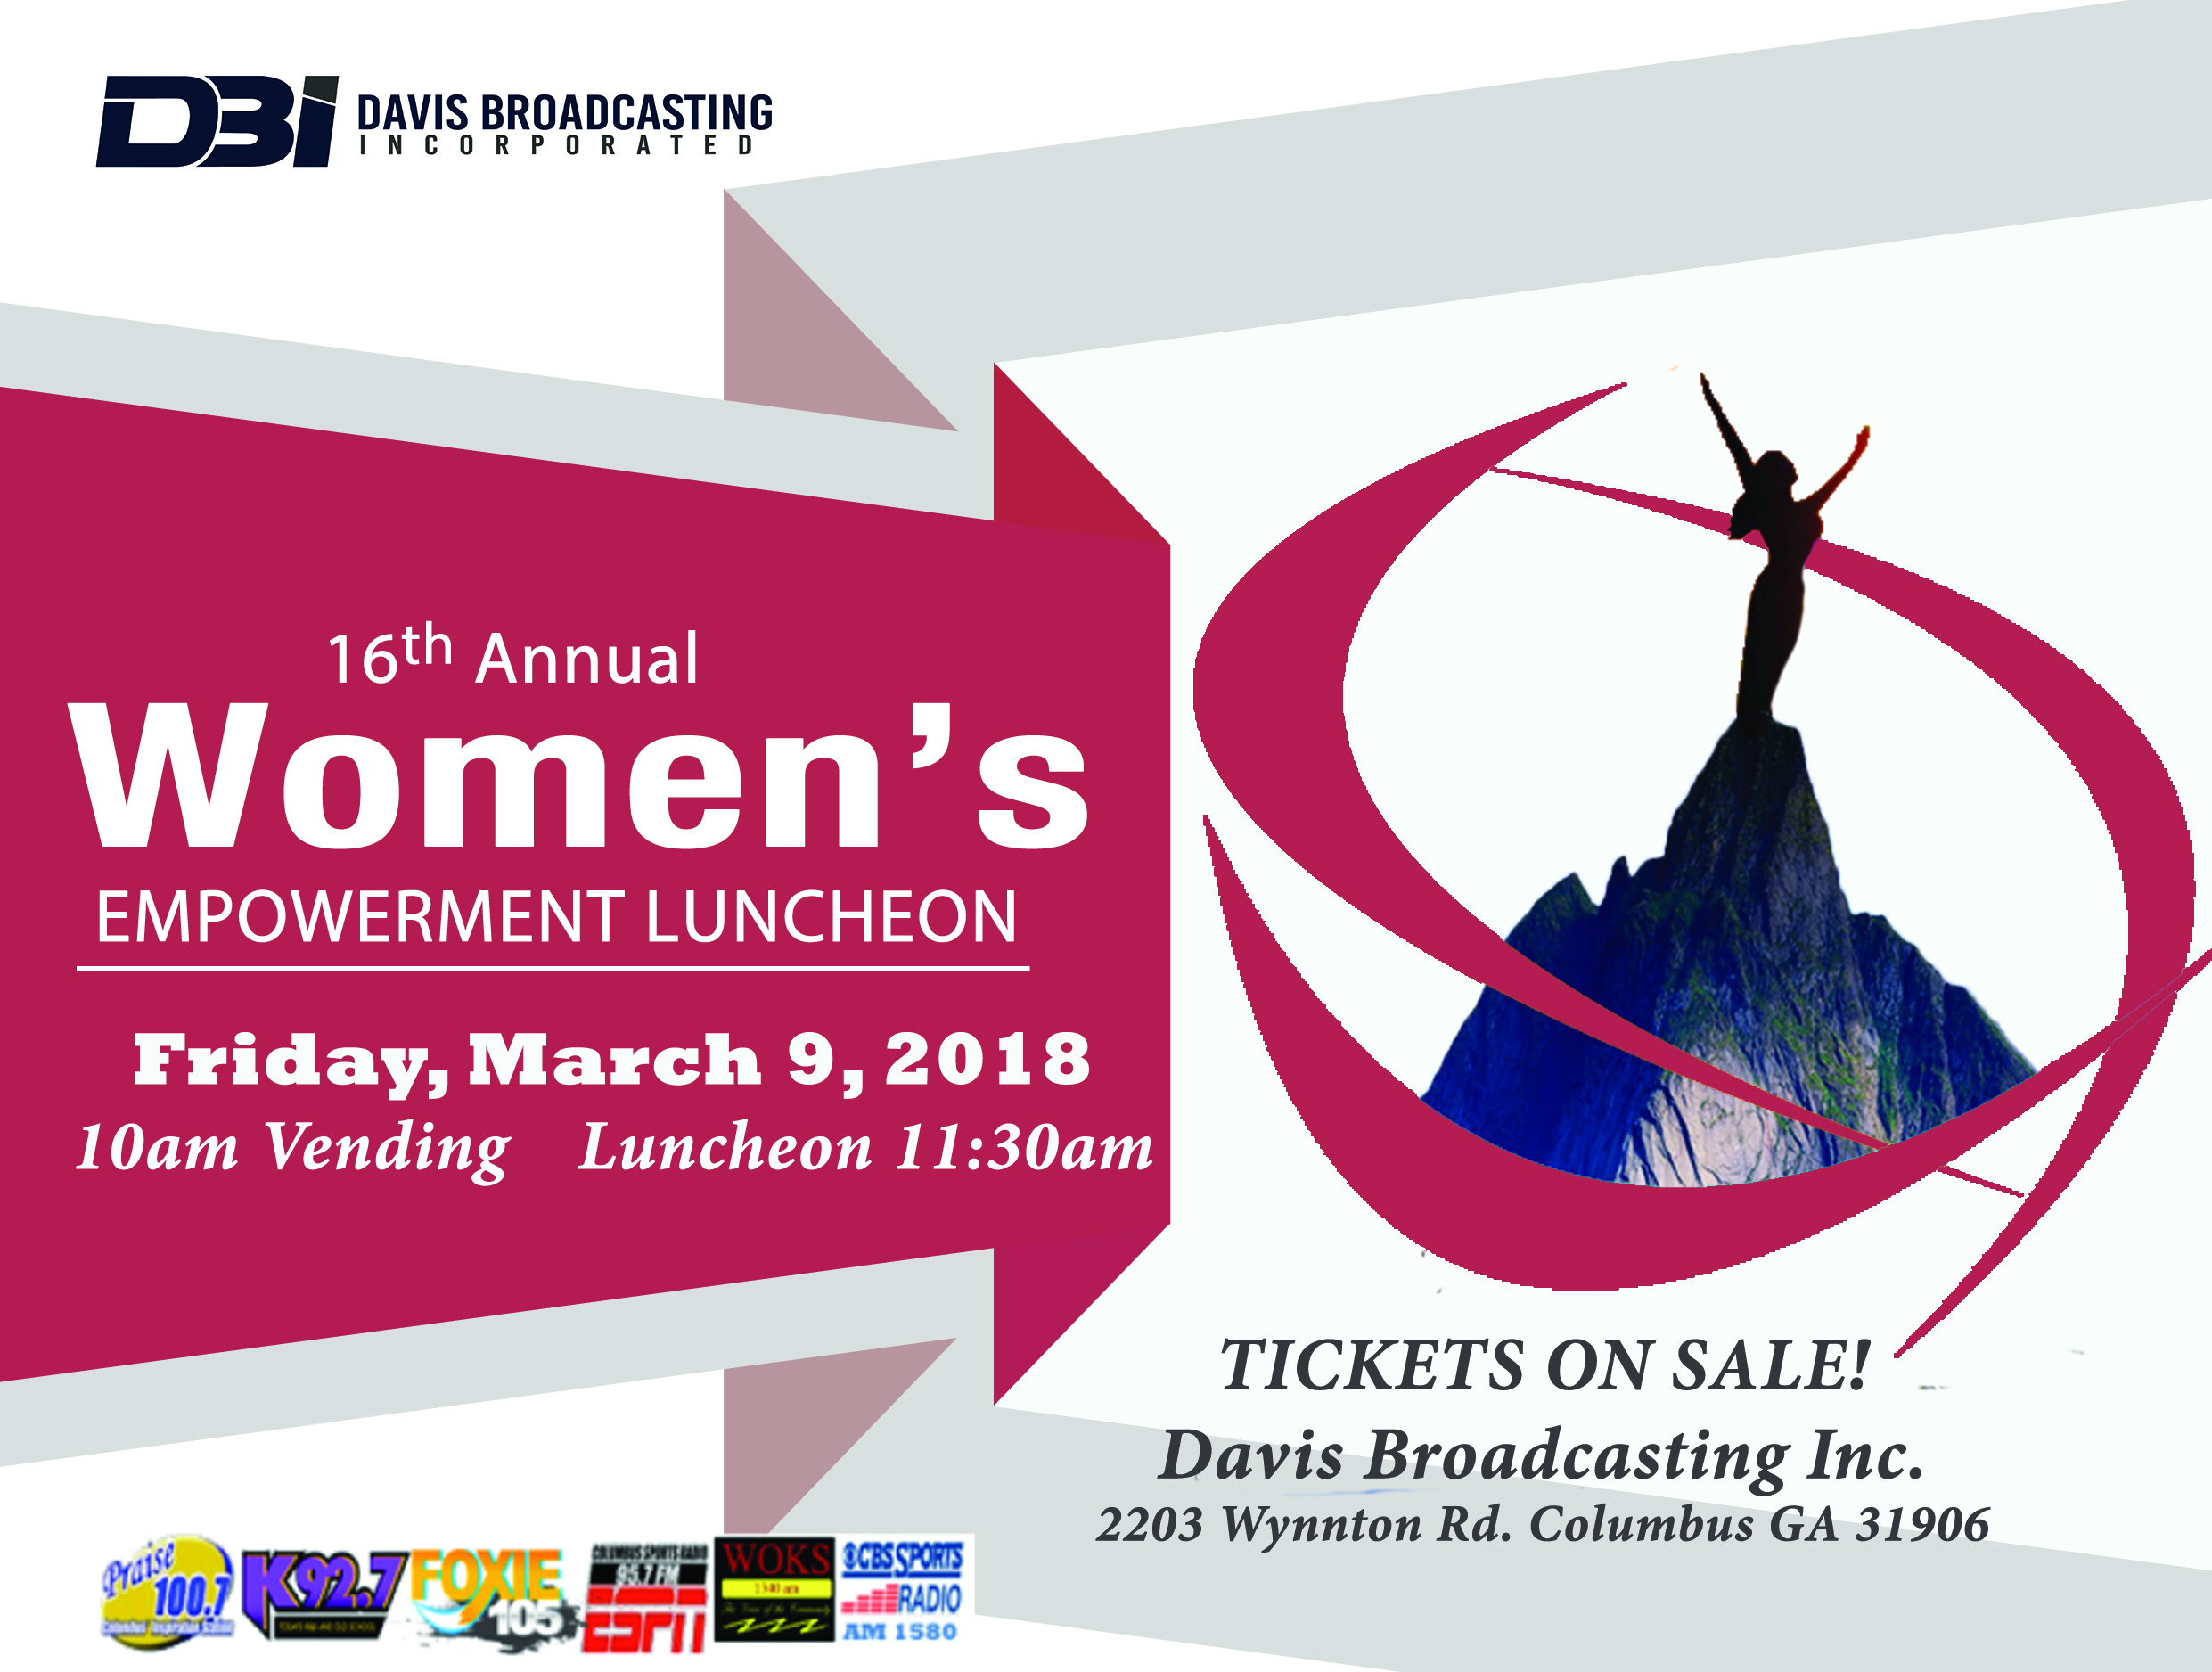 Davis Broadcasting's 16th Annual Womens Empowerment Luncheon